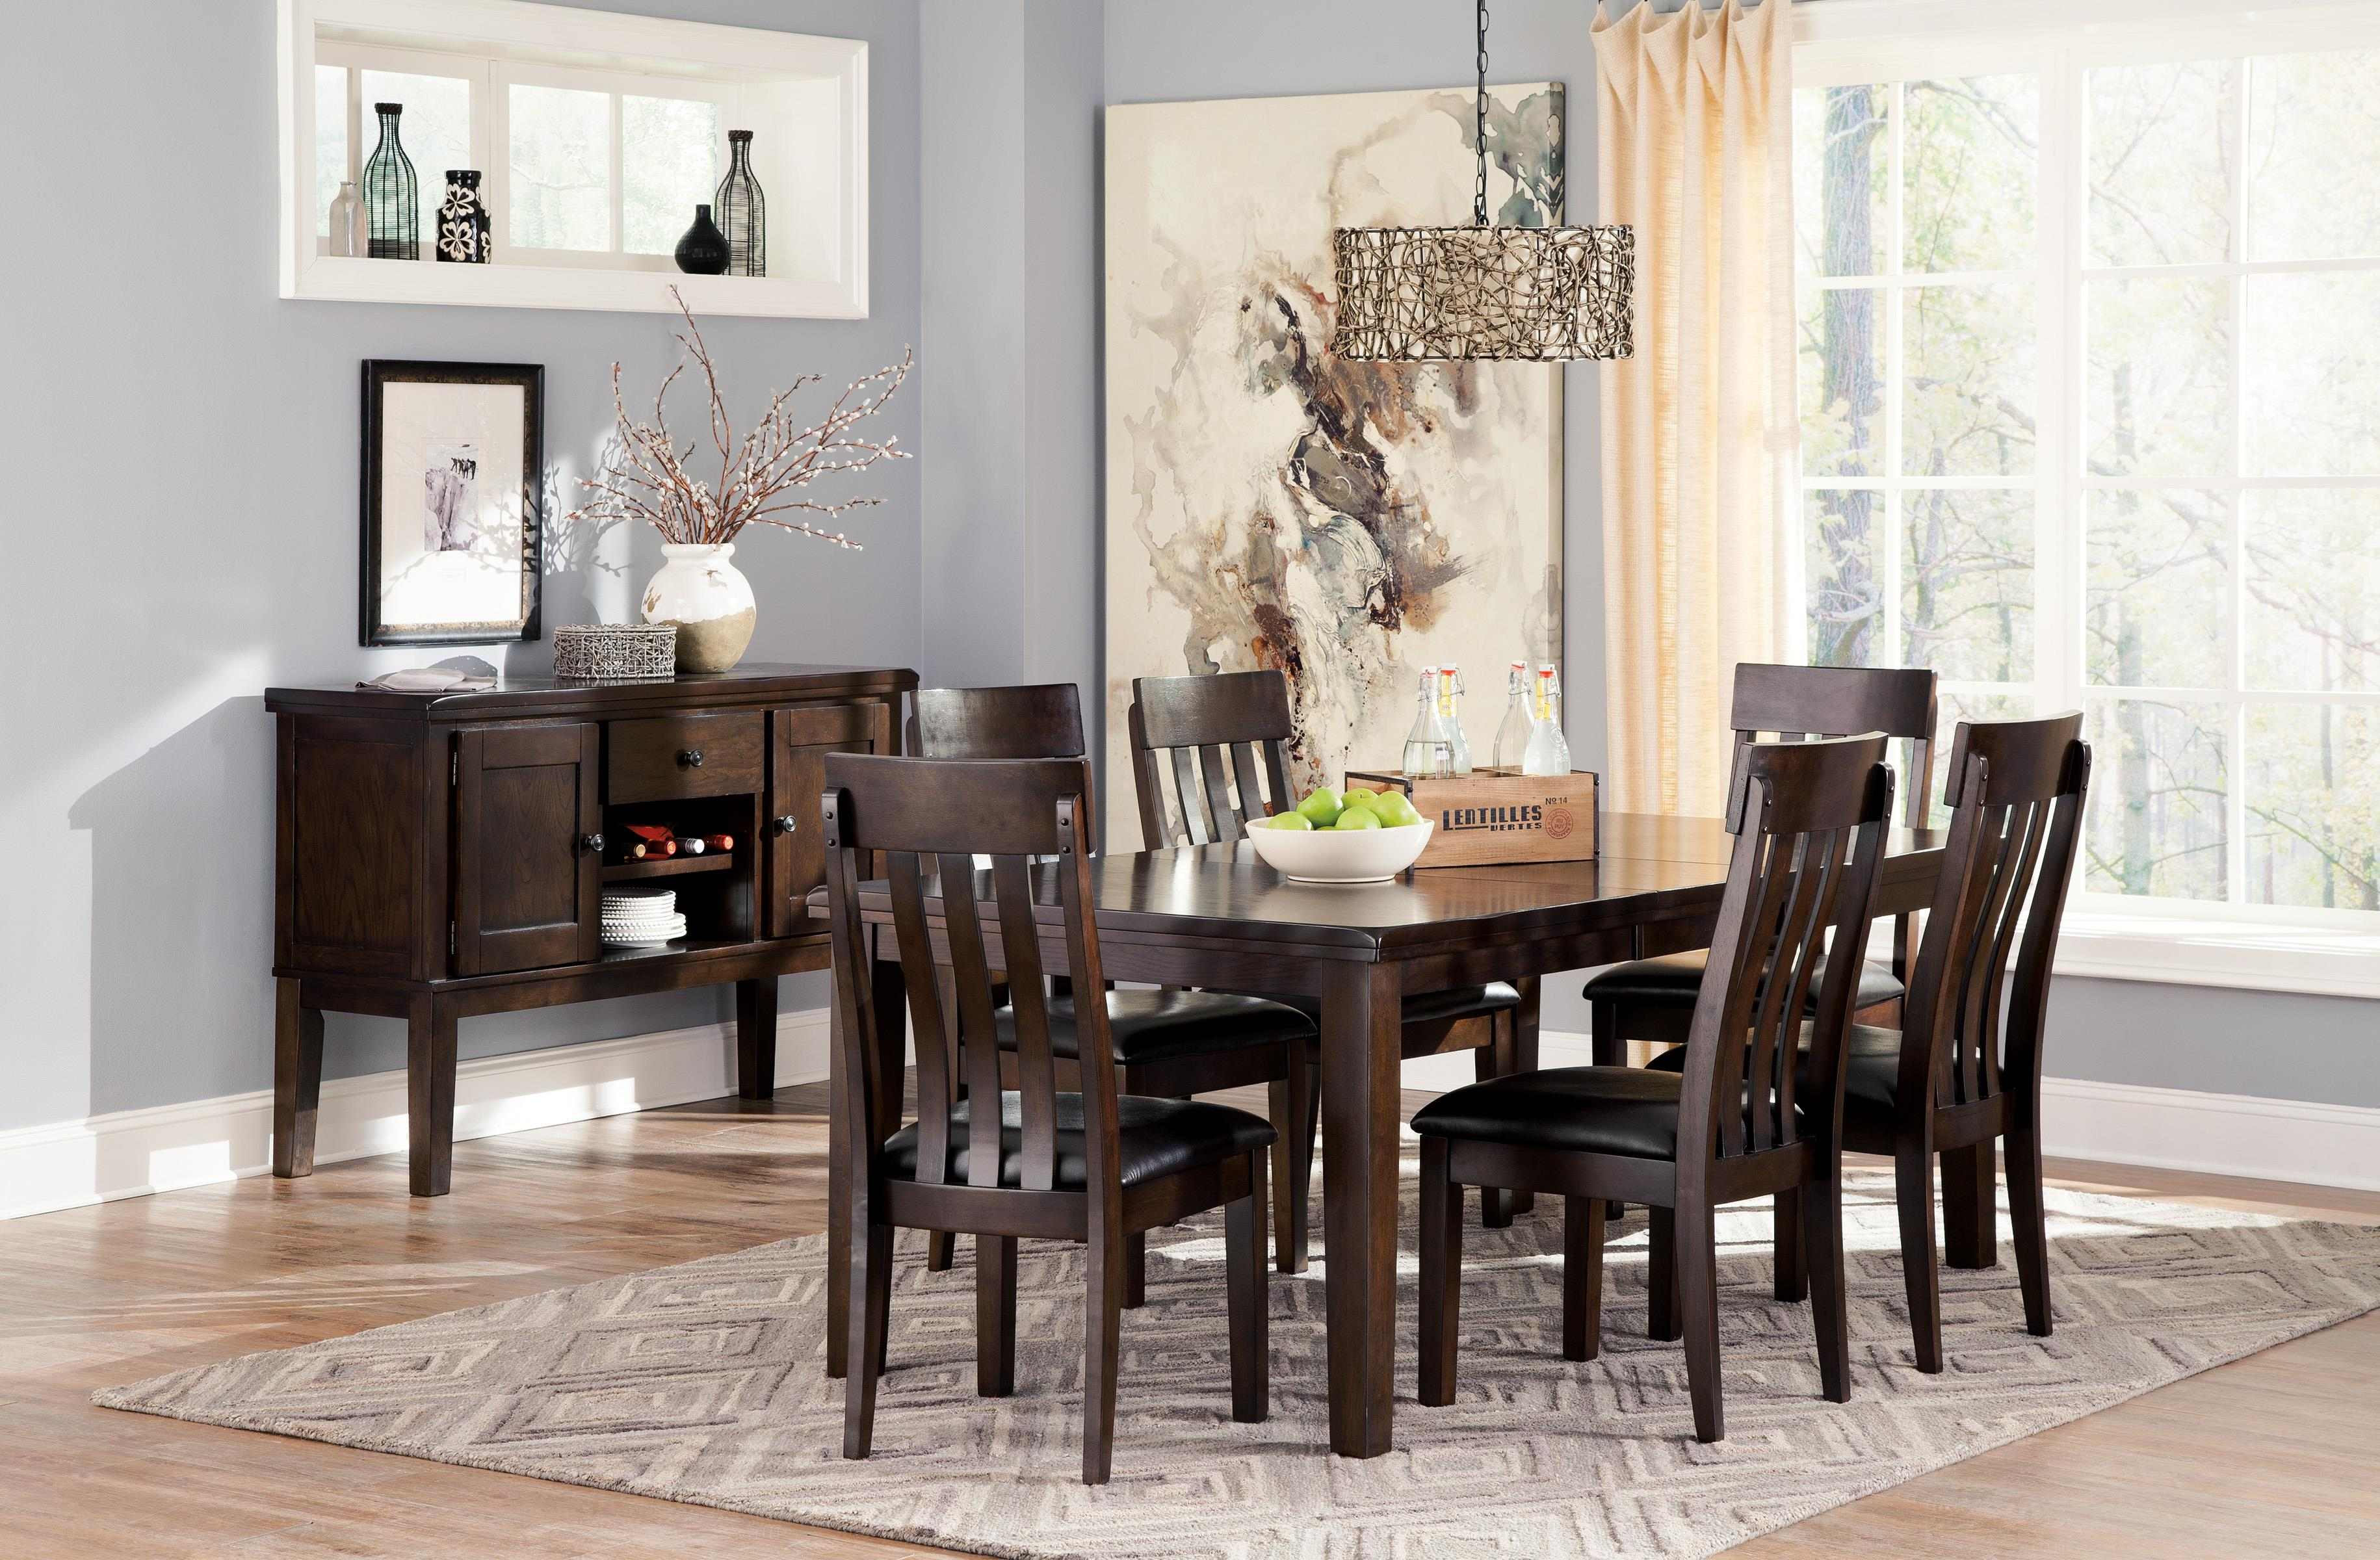 Signature Design By Ashley Haddigan 7-Piece Rectangular Dining Room Table W/ Oak Veneers And